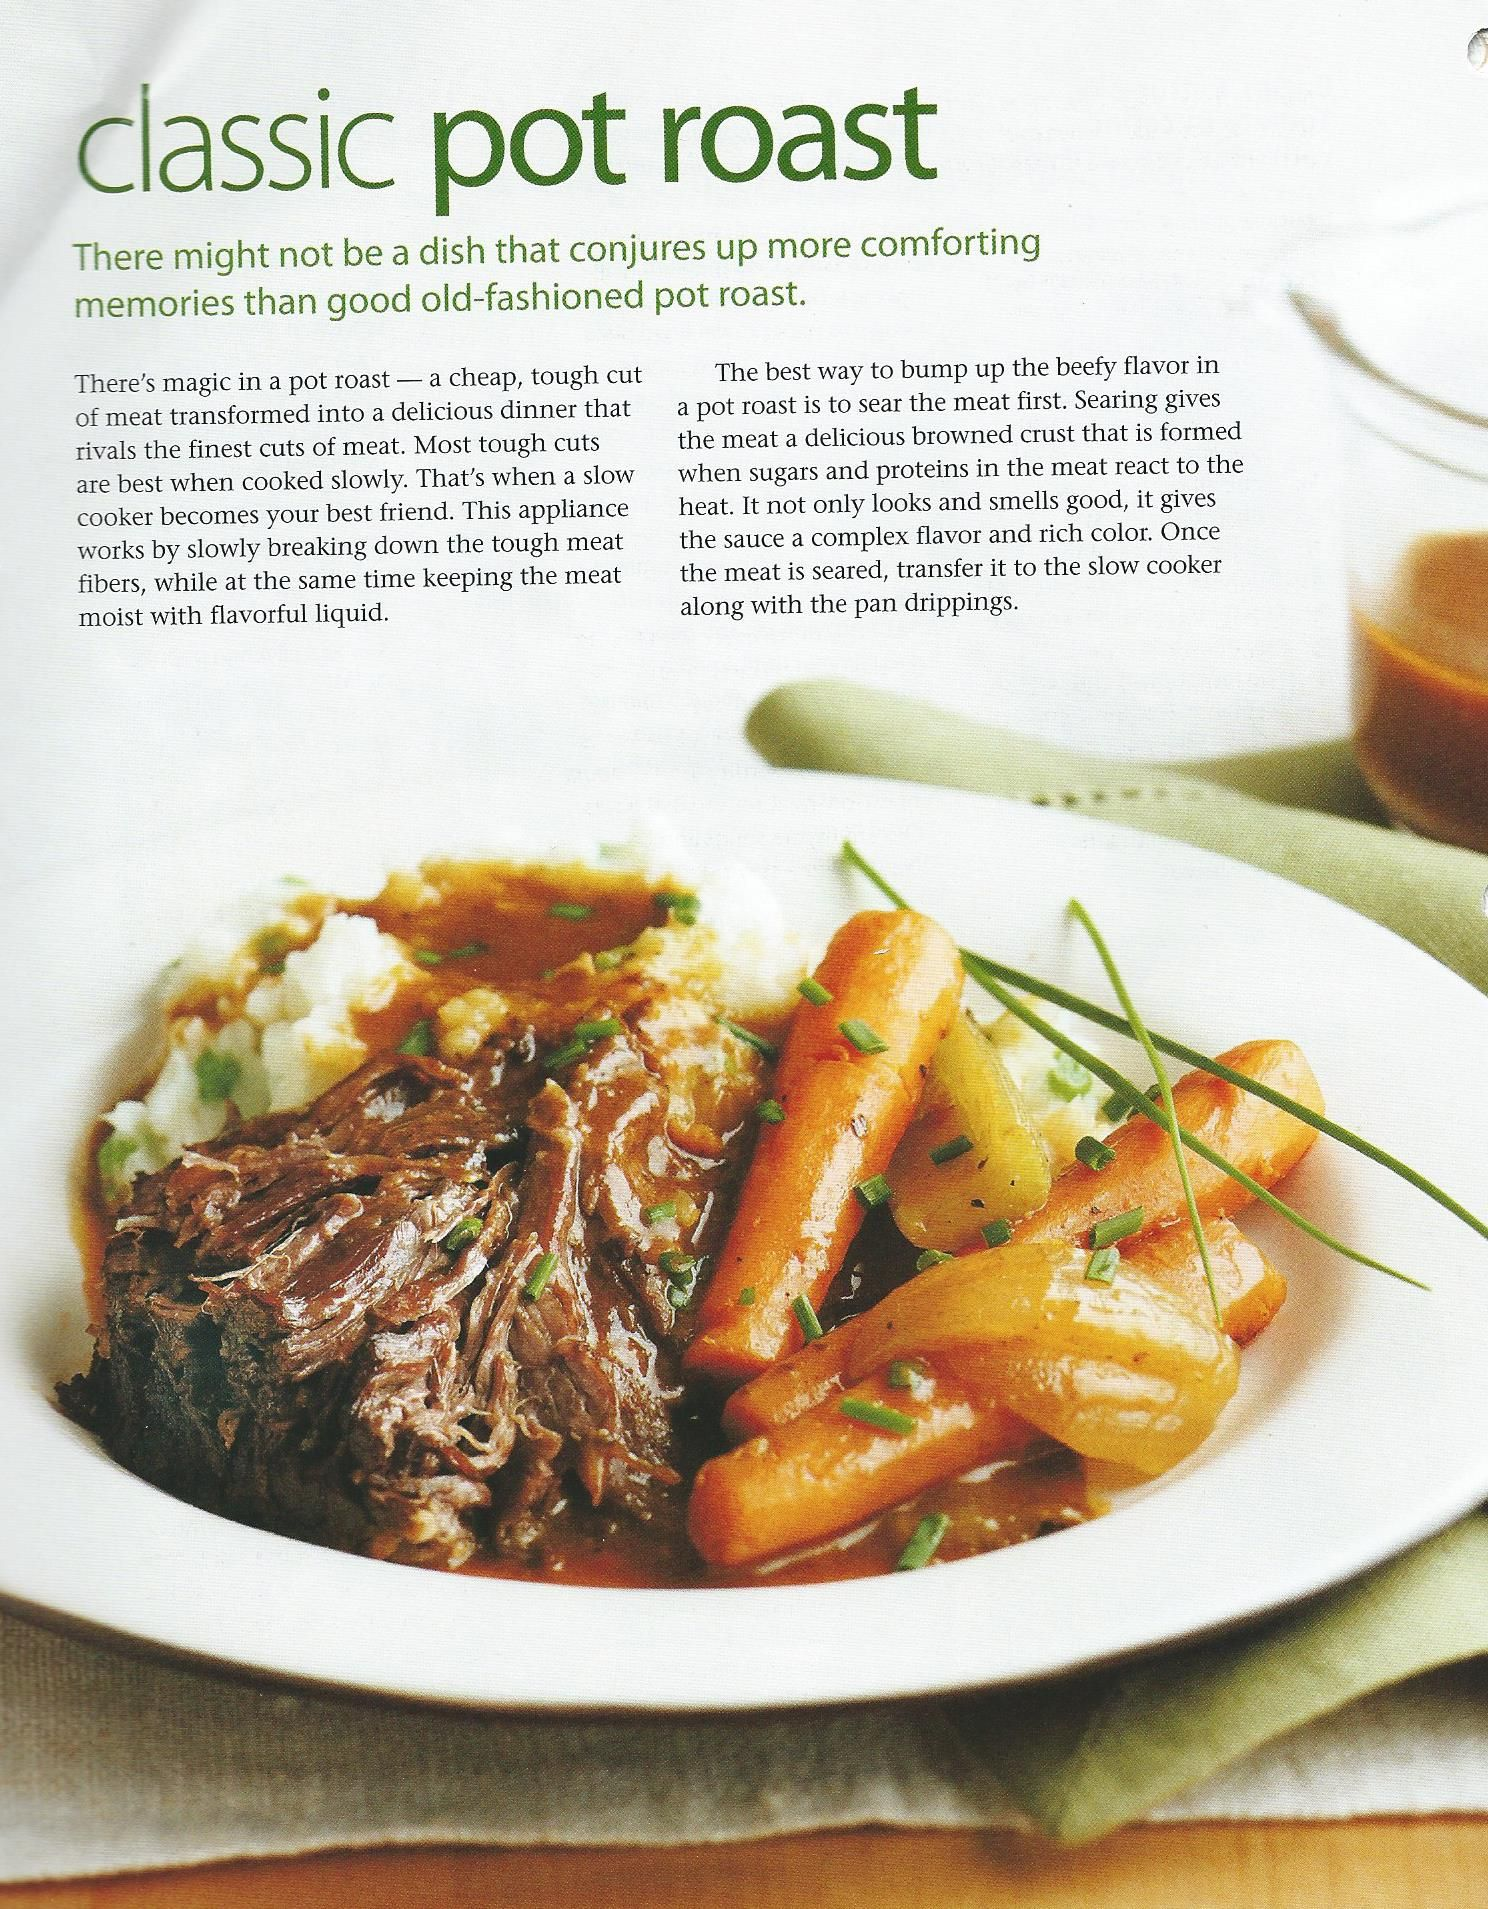 Classic Pot Roast Page 1 Yummy Dinners Pot Roast Classic Pot Roast